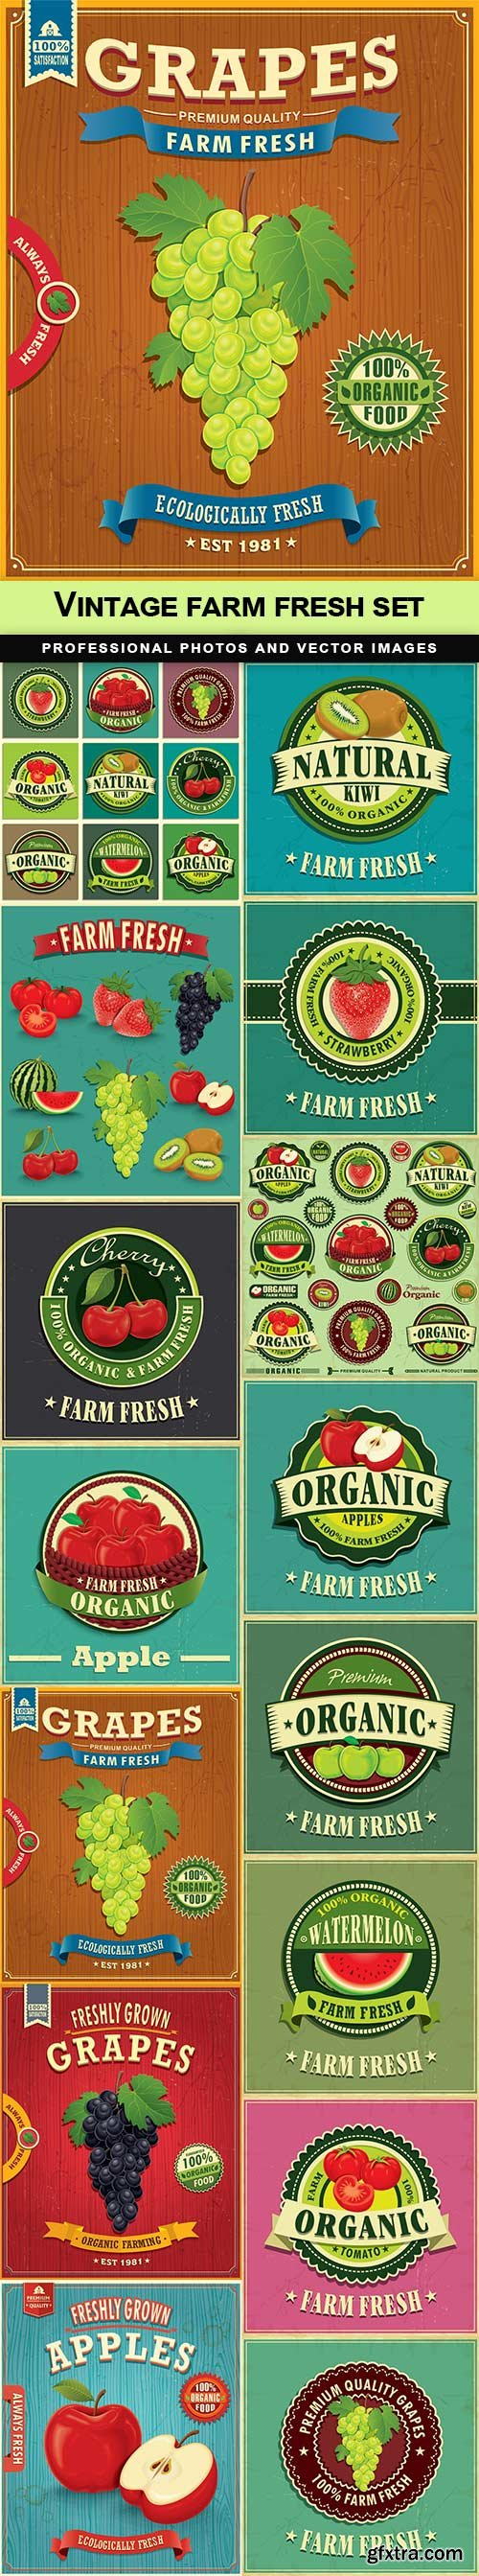 Vintage farm fresh set